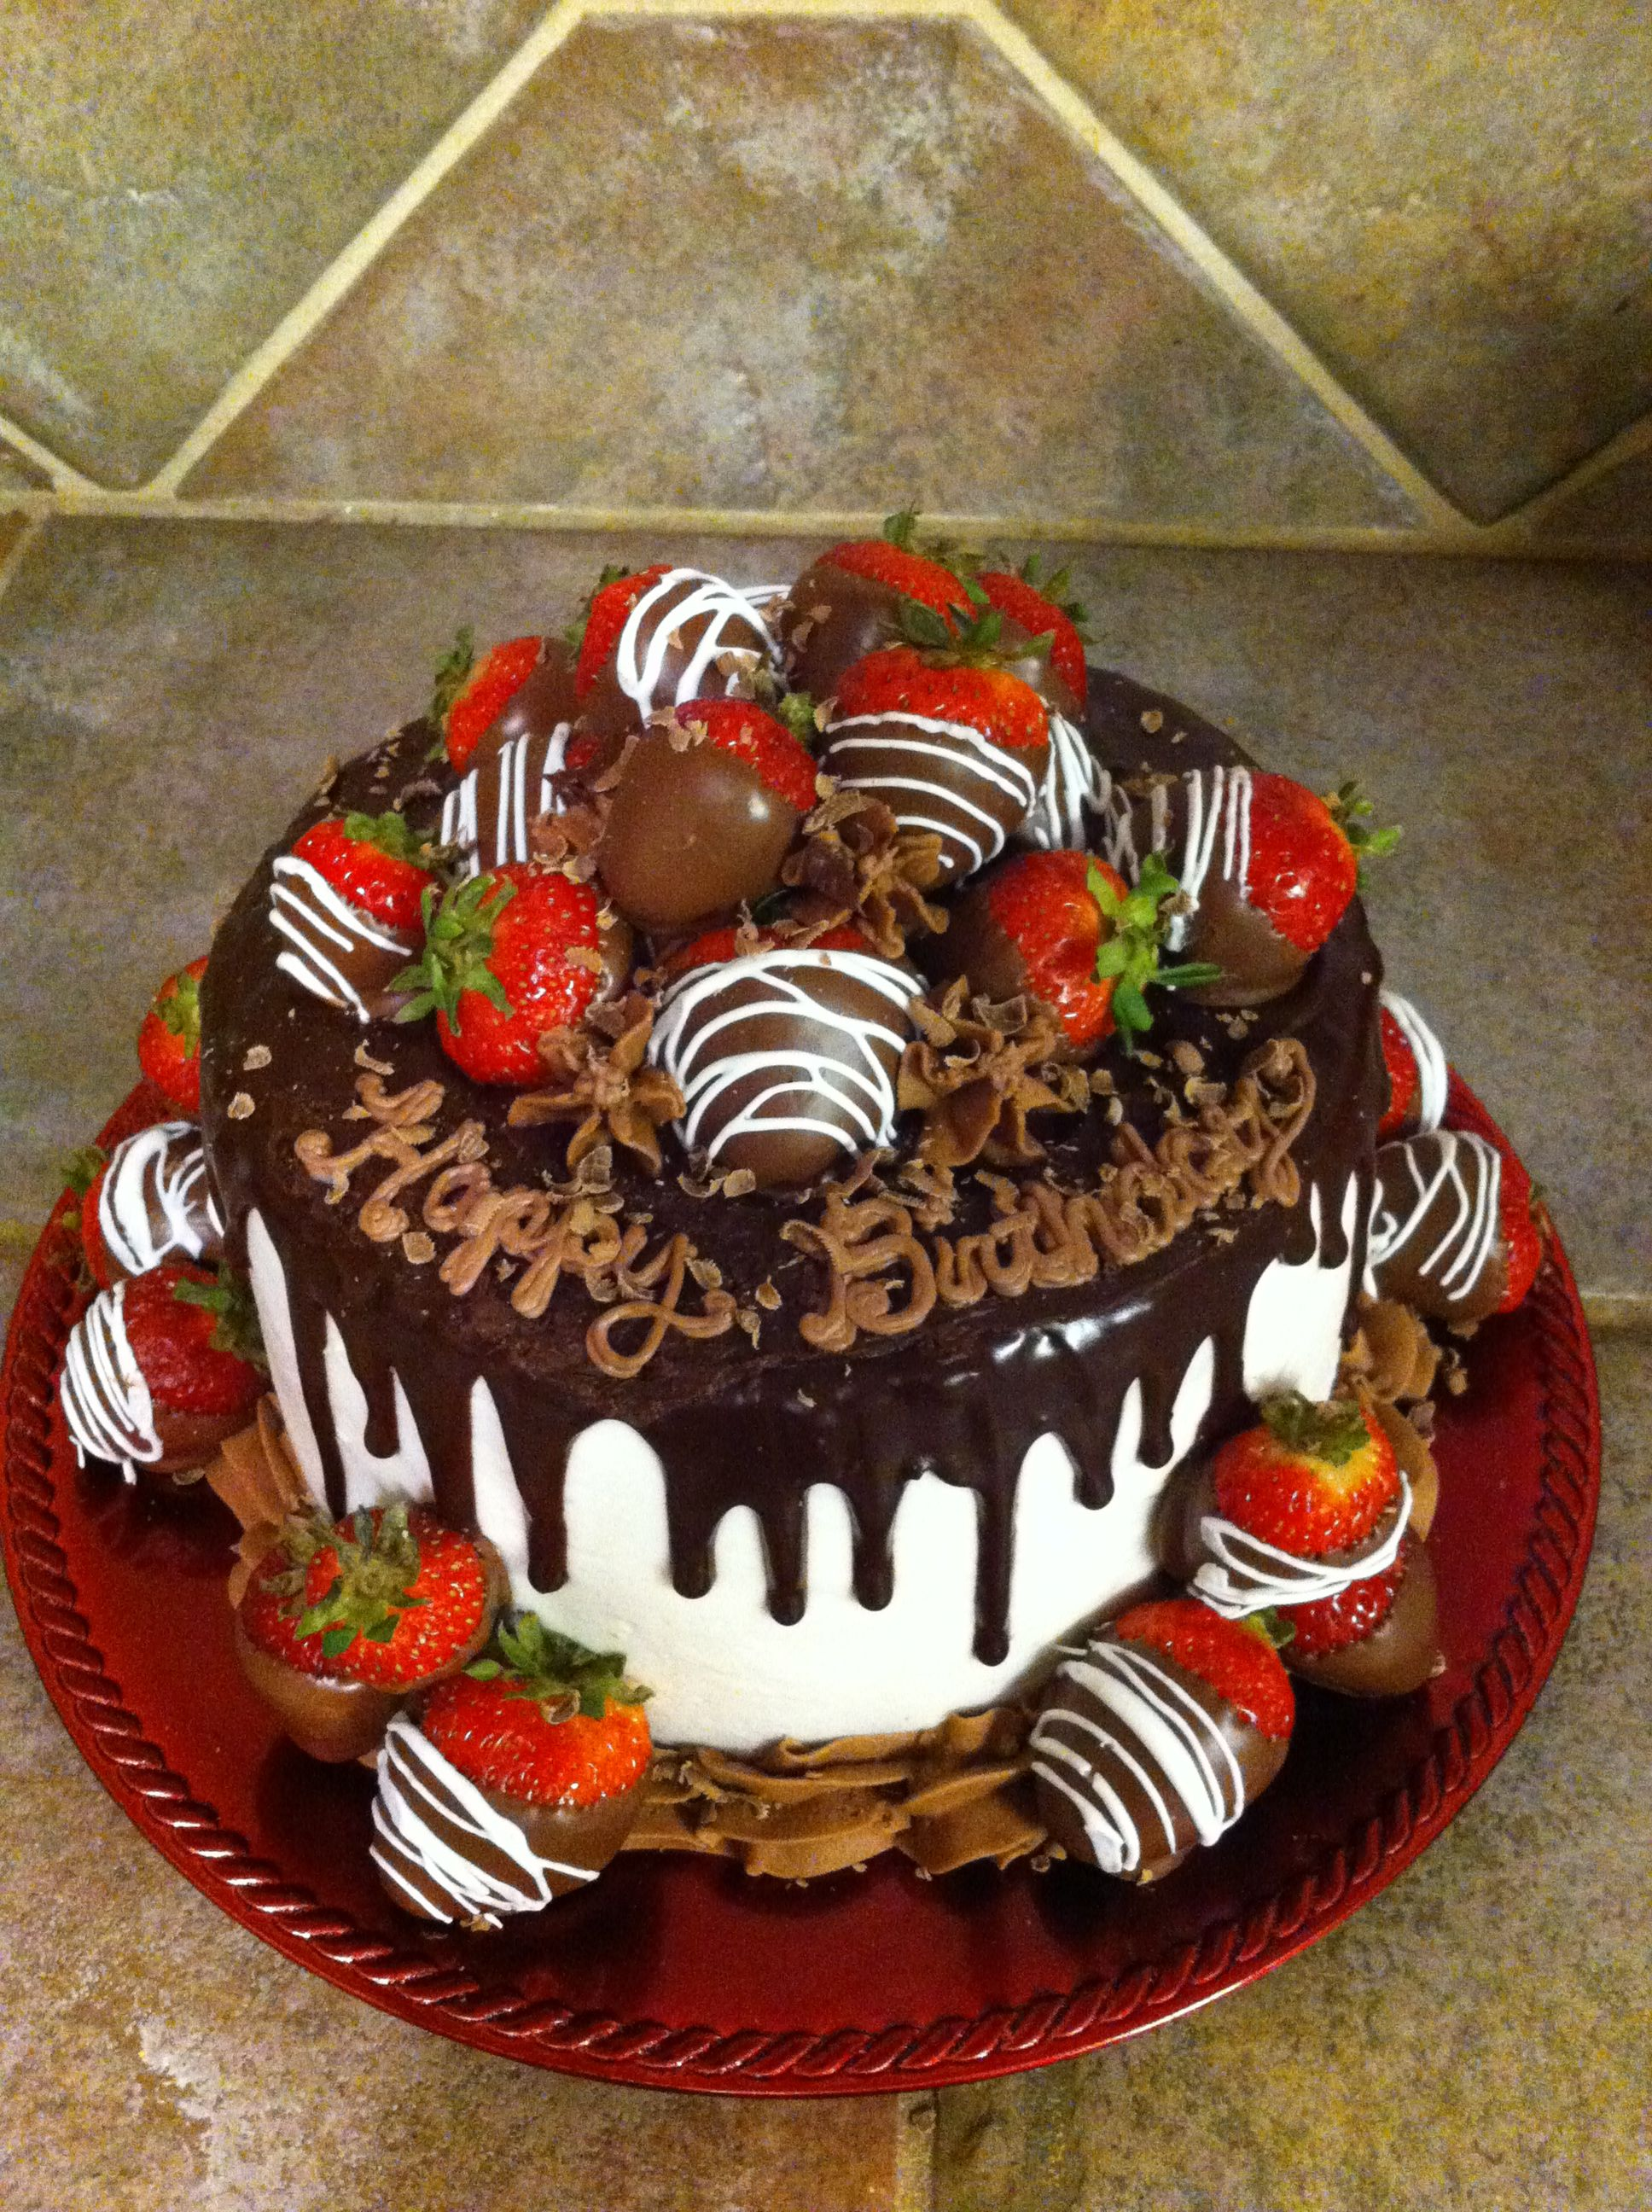 Chocolate Covered Strawberries Birthday Cake With Images